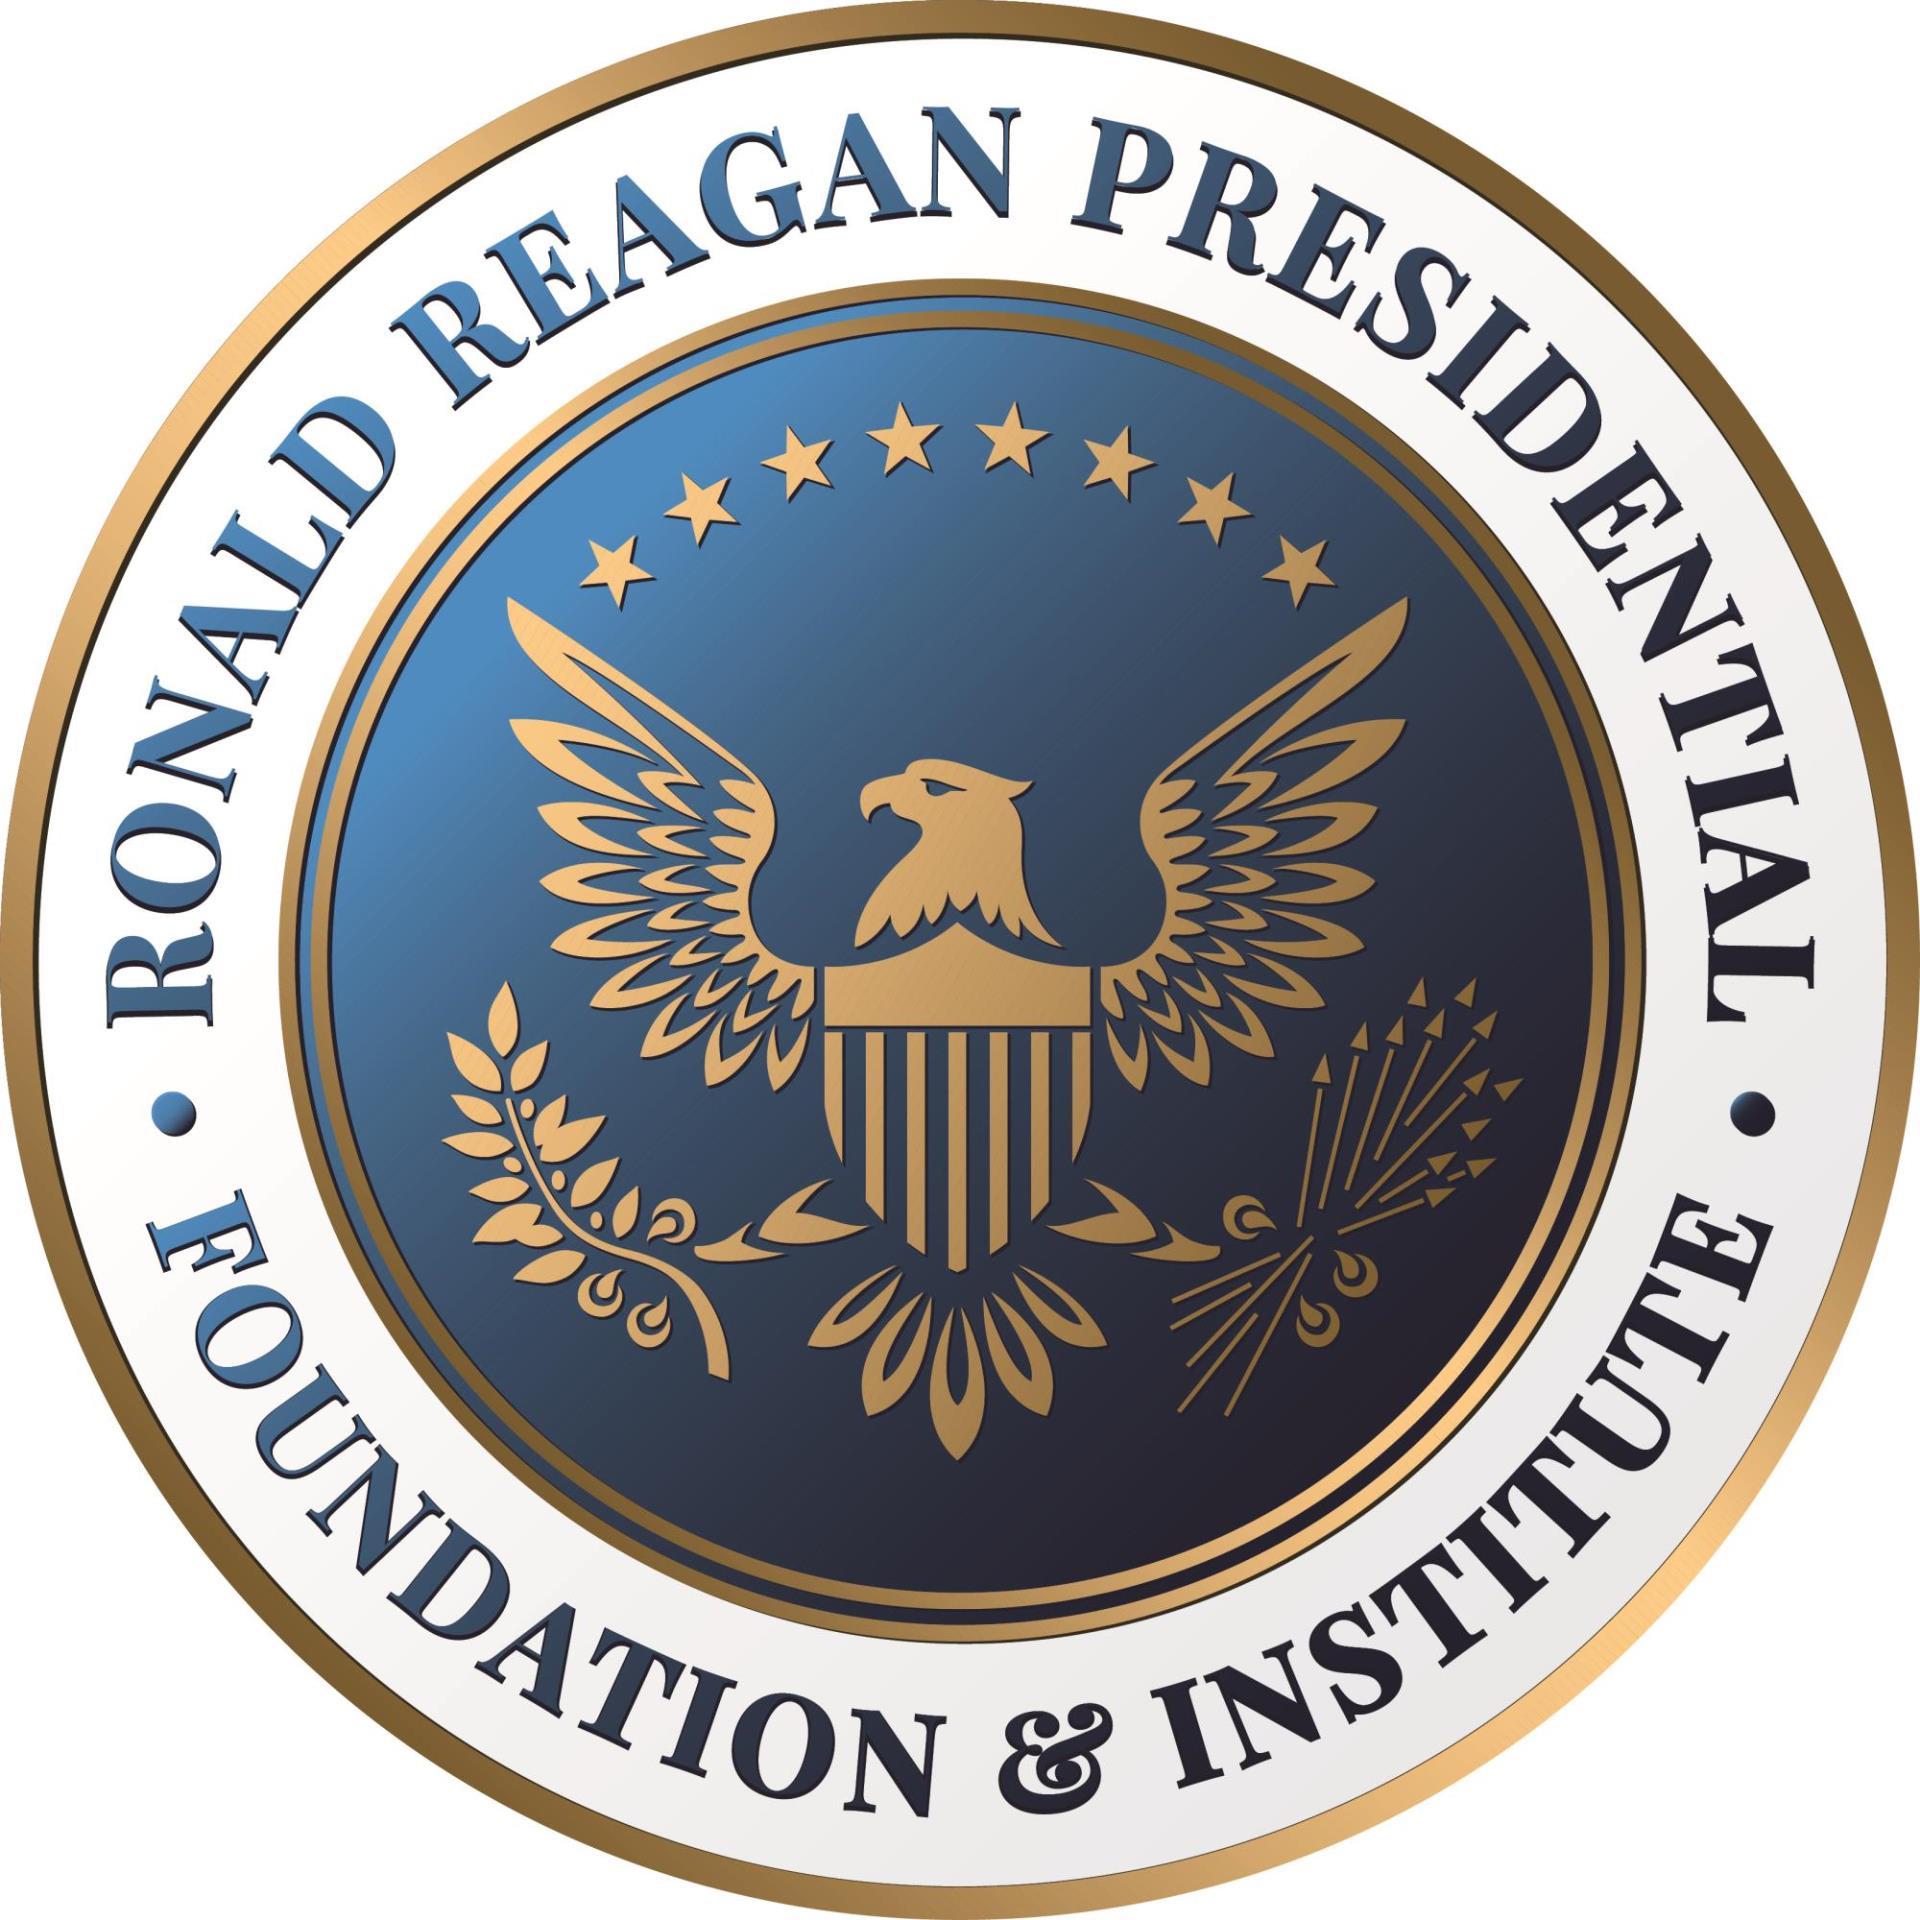 Ronald Reagan Presidential Foundation and Institute icon